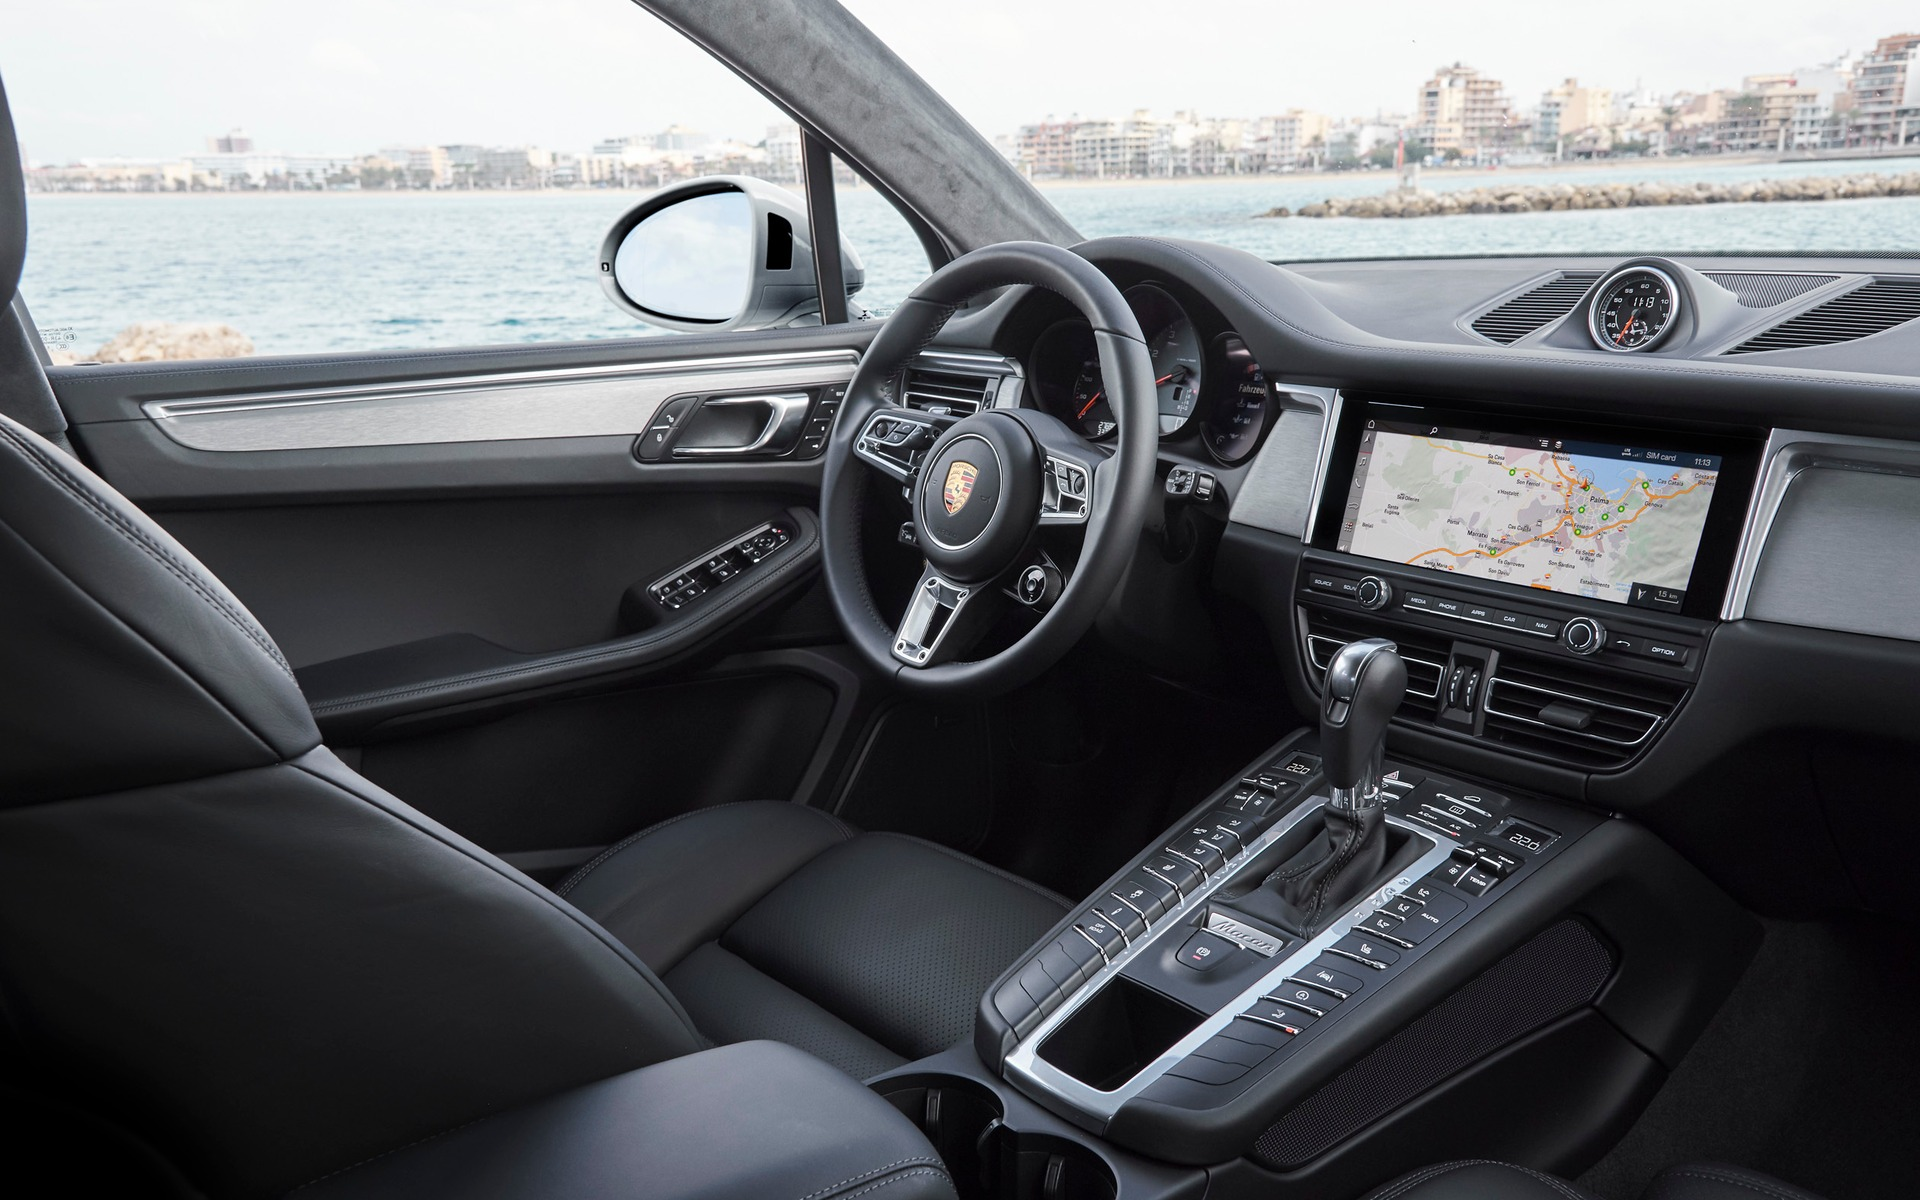 2020 Porsche Macan Rumors, New Design, Specs, Price >> 2019 Porsche Macan More Accomplished Than Rivals The Car Guide